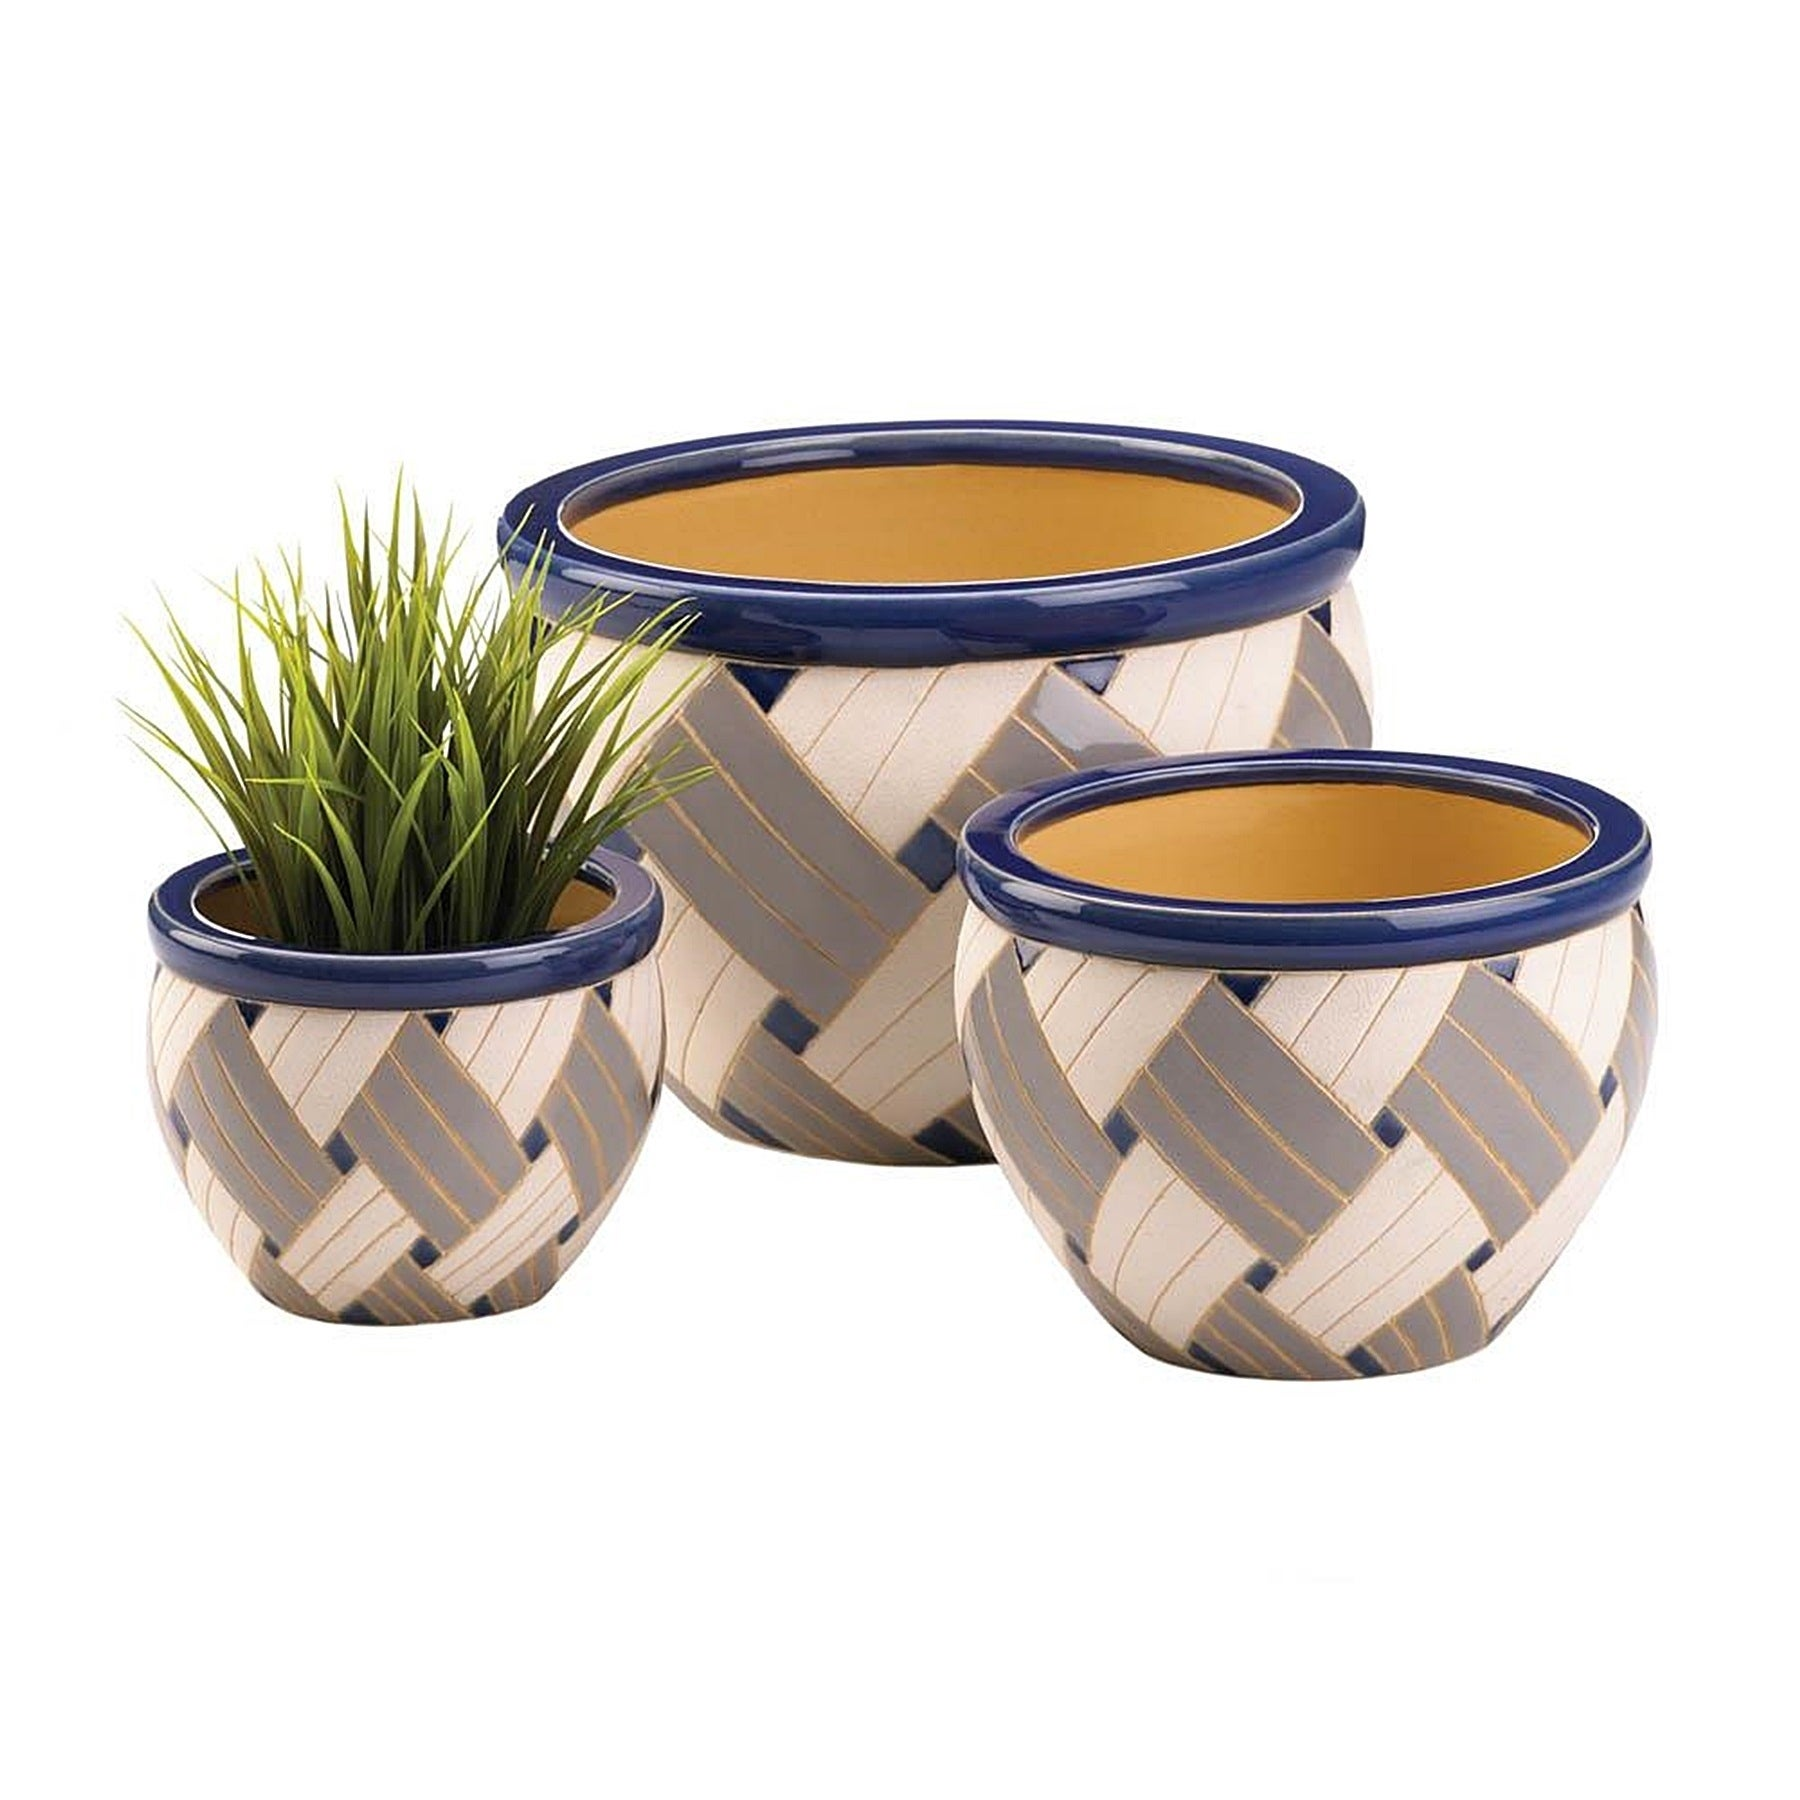 Mulvane Geometric Designed Ceramic Plant Holders - Set of 3